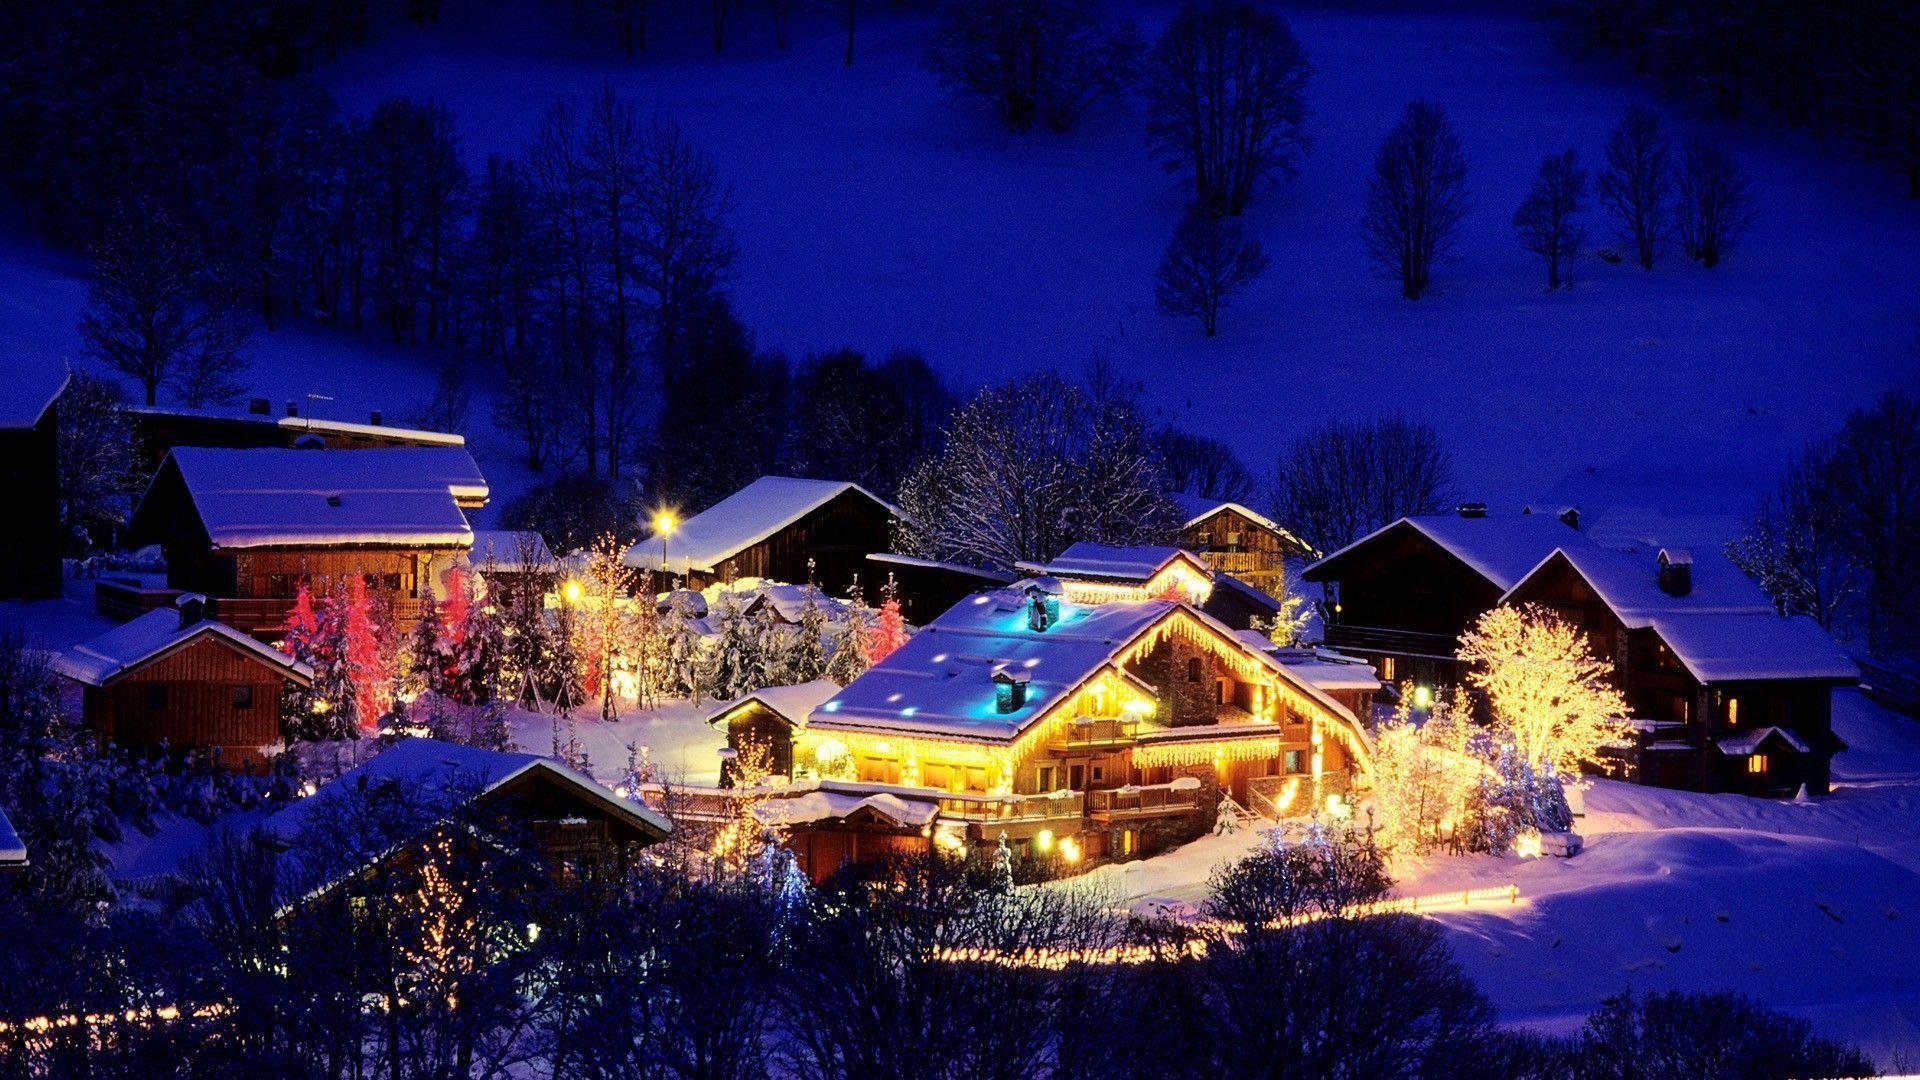 25 Beautiful Winter and Christmas Wallpapers For Desktops